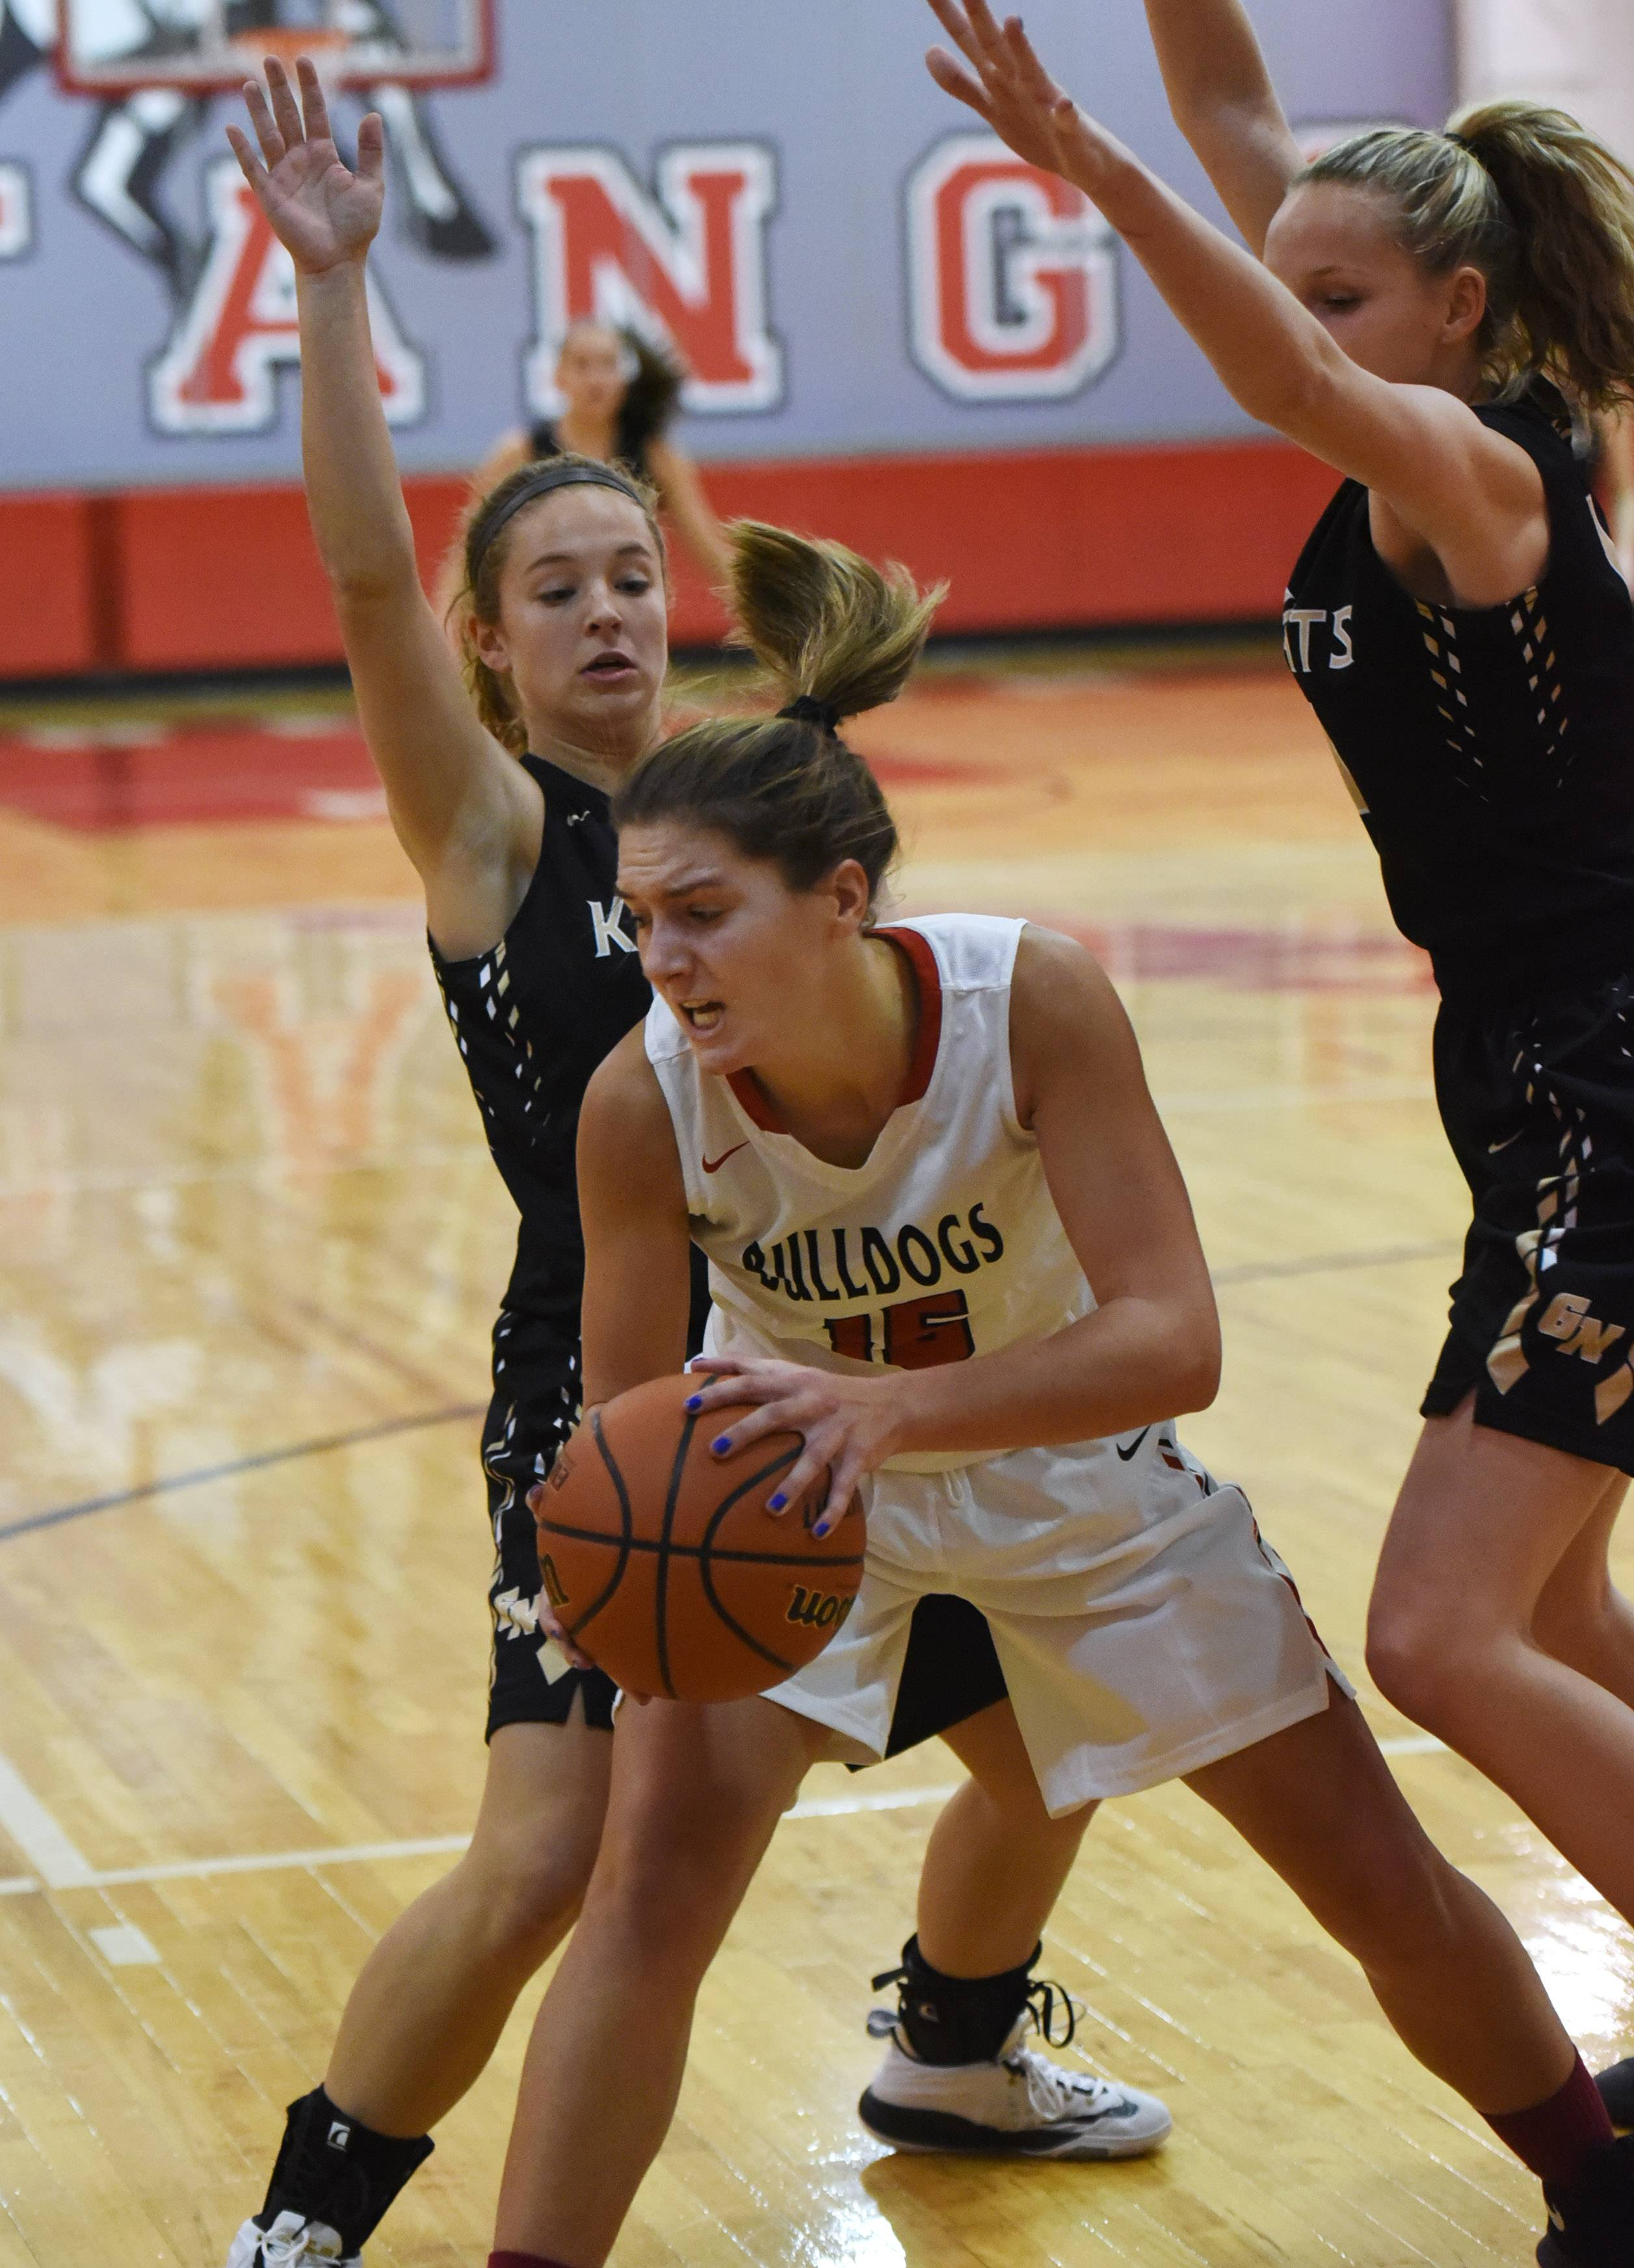 Grant's Kennedy Kiesgen, center, is pressured by Grayslake North's Faith Standerski, left, and Abbey Guenther on Monday at Mundelein's Thanksgiving tournament.